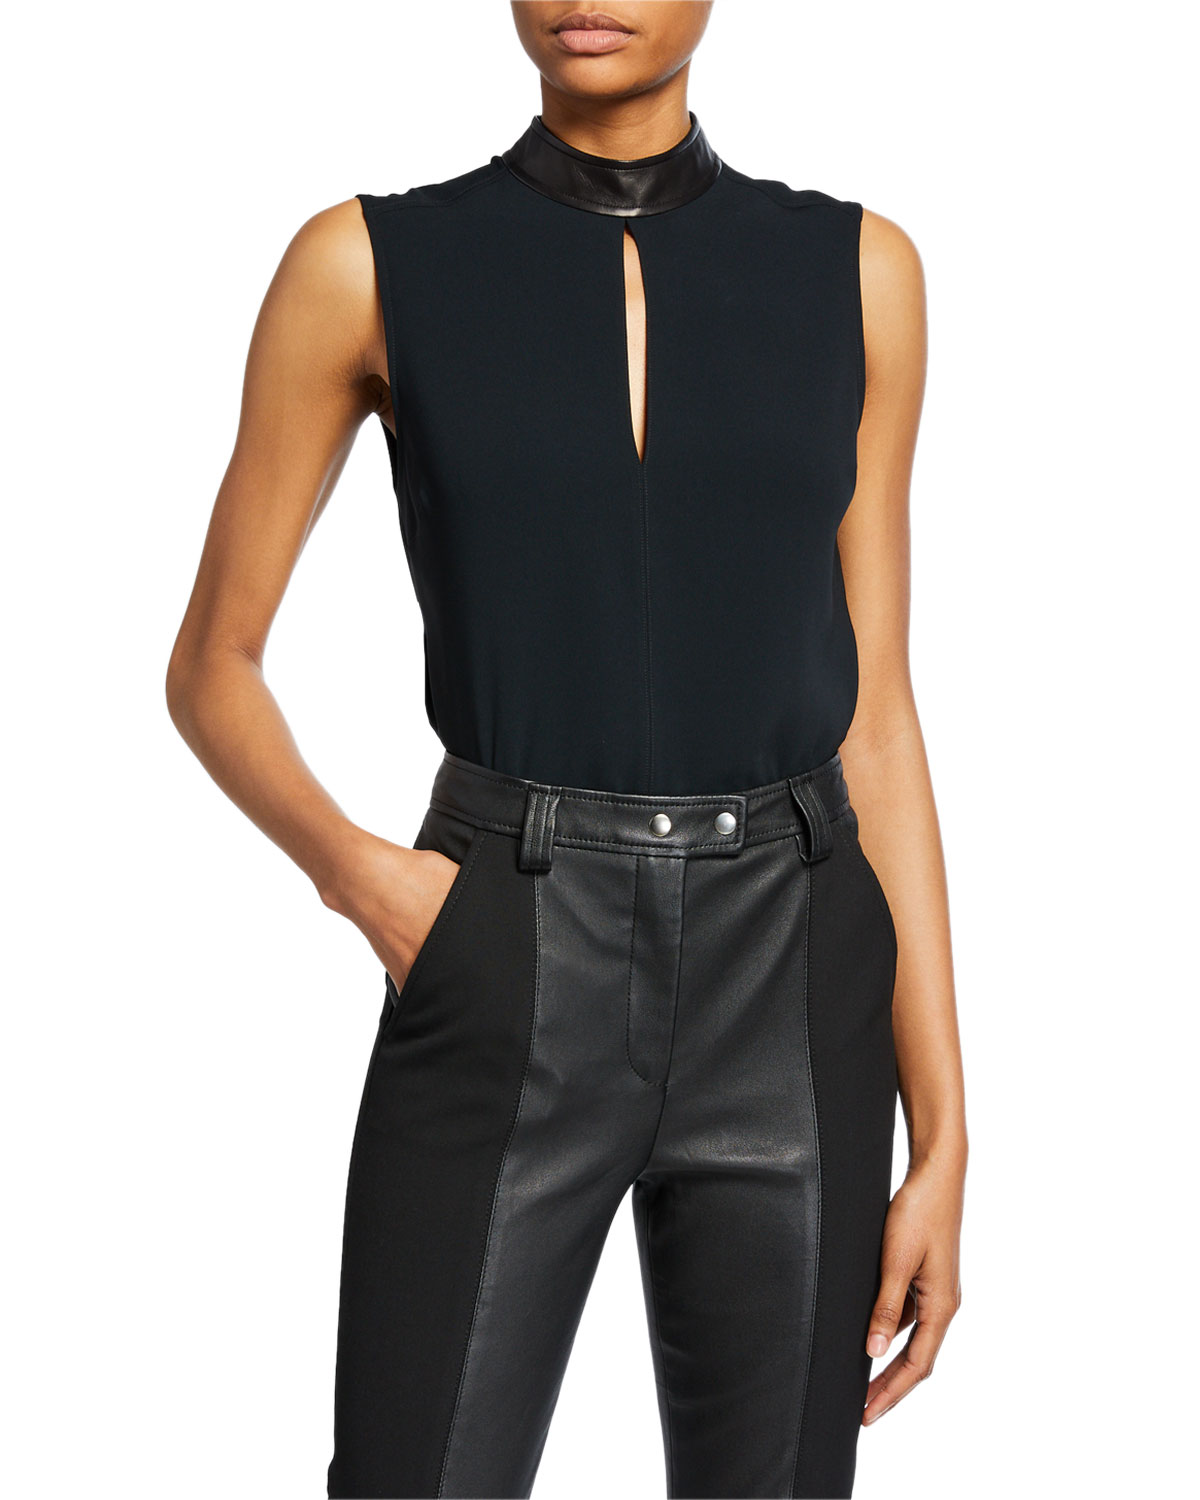 A.l.c Tops DALLAS SLEEVELESS COLLARED KEYHOLE TOP